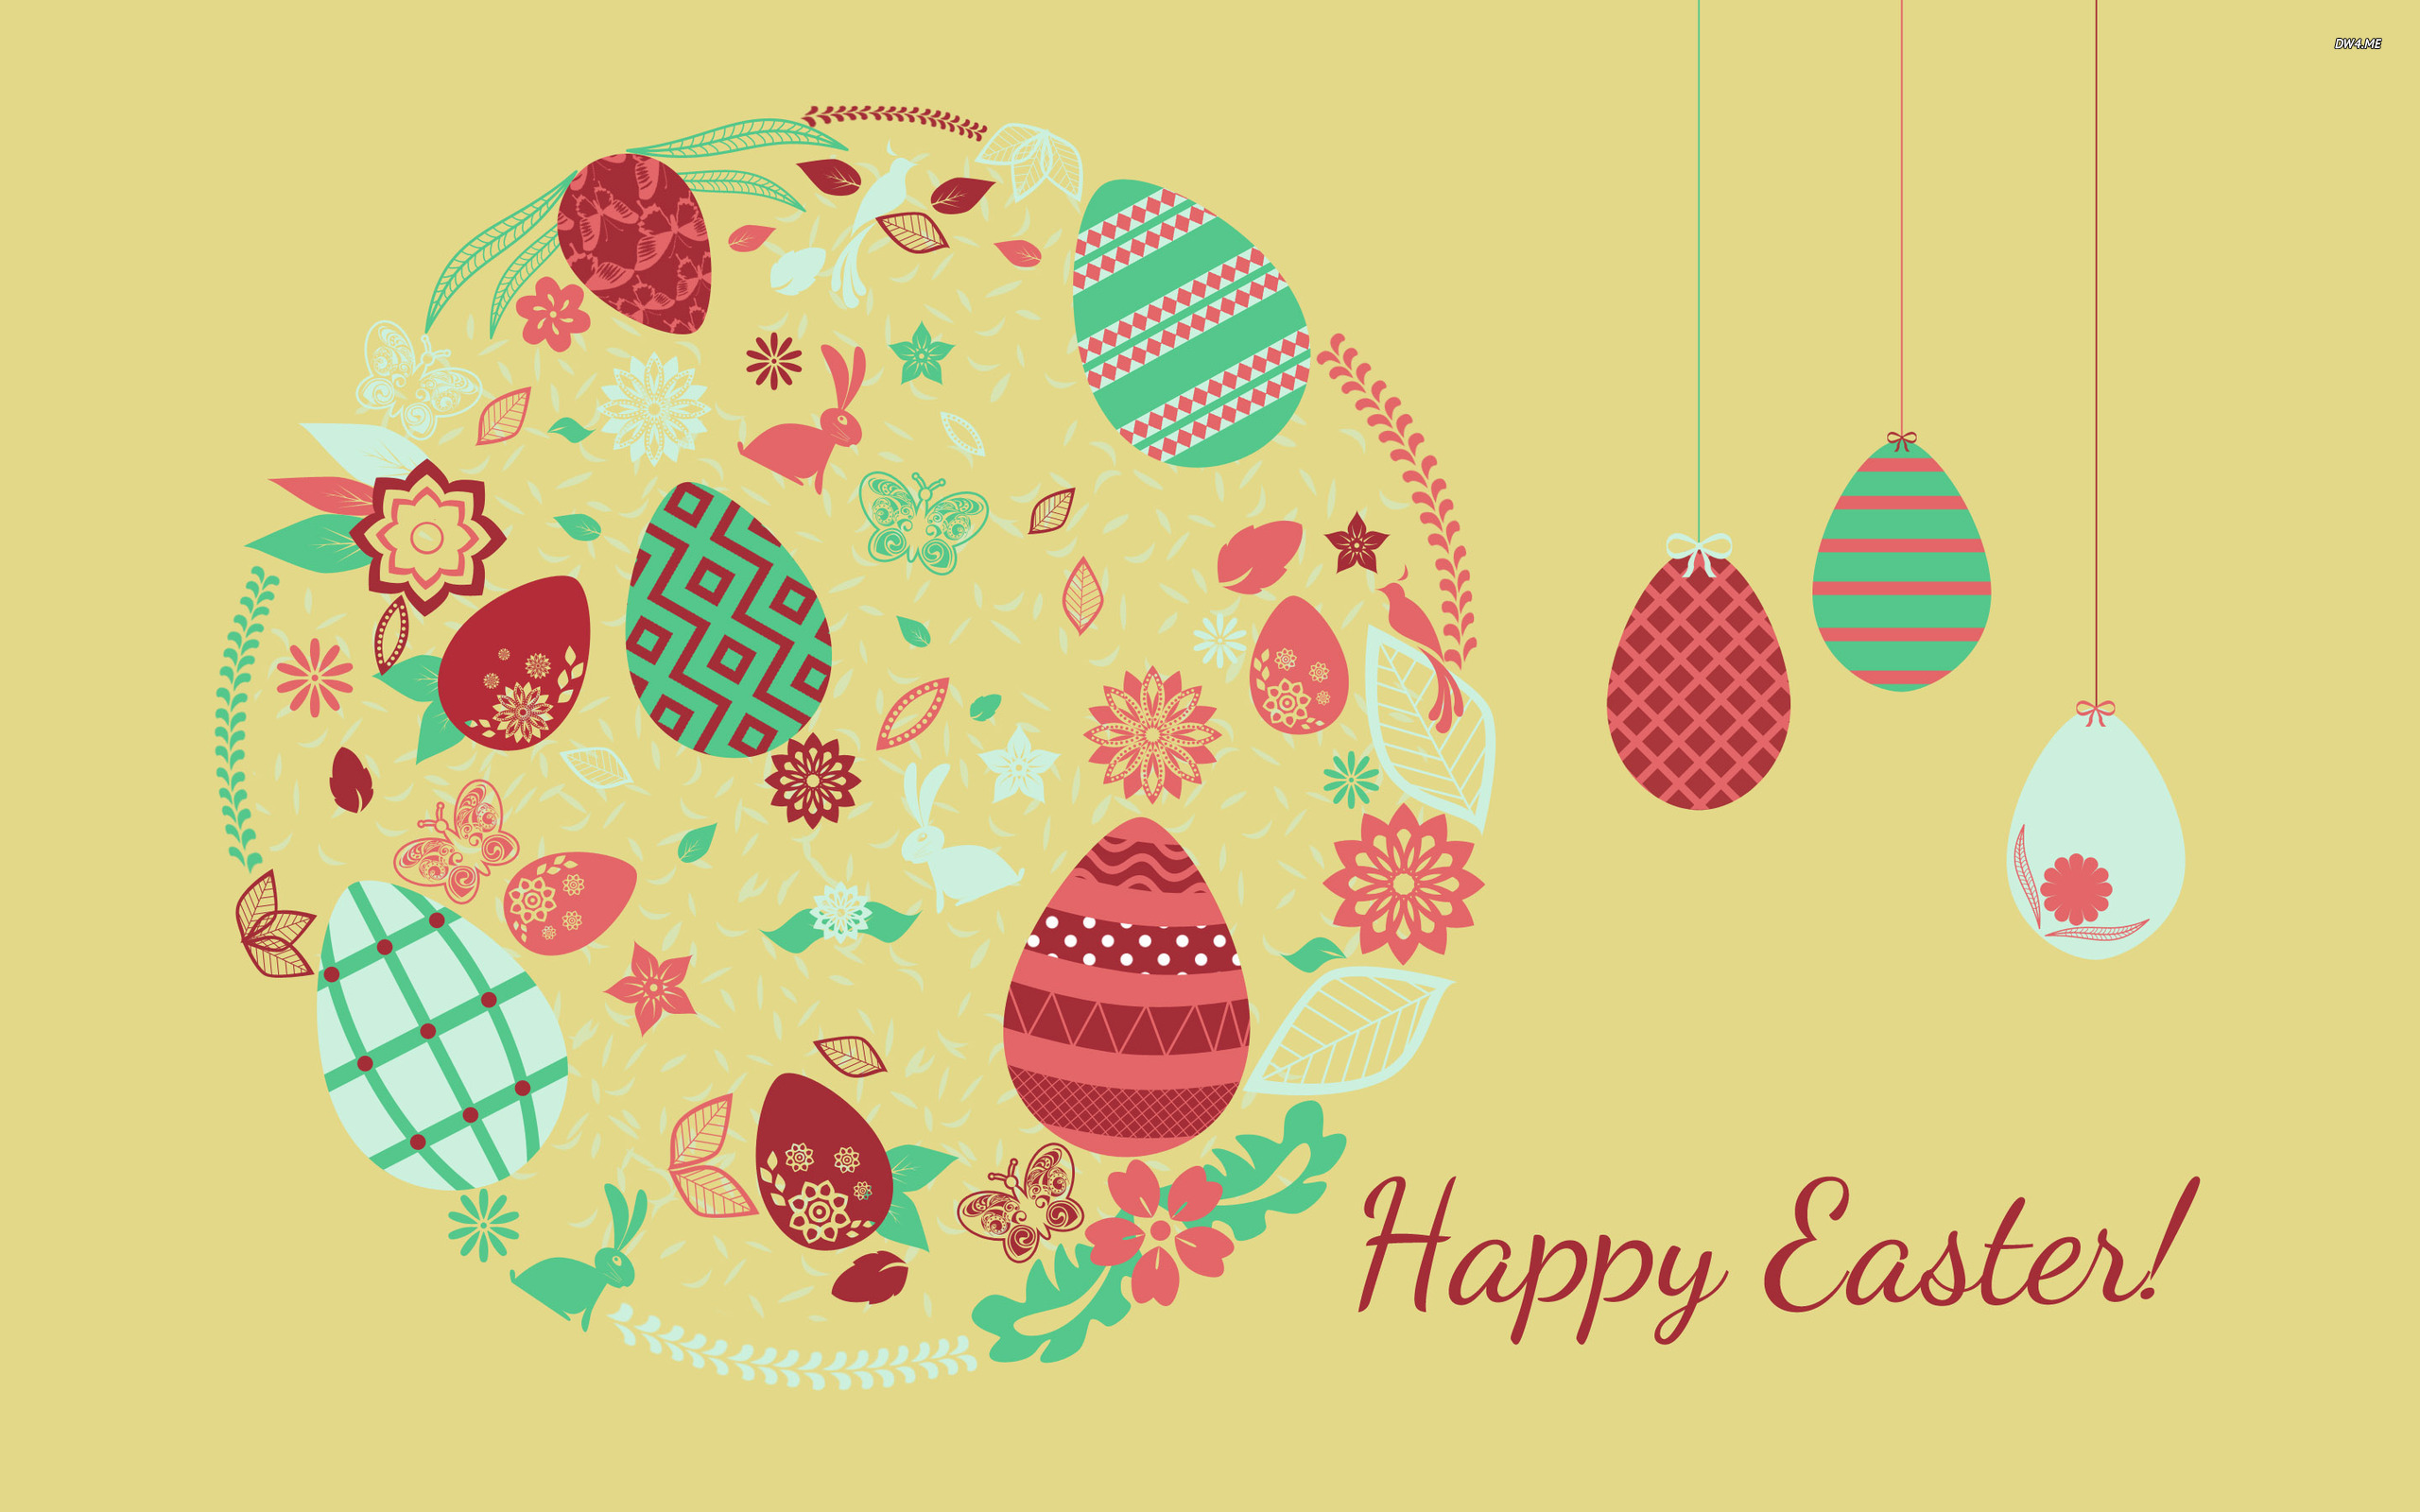 Happy Easter wallpaper   Holiday wallpapers   1273 2560x1600